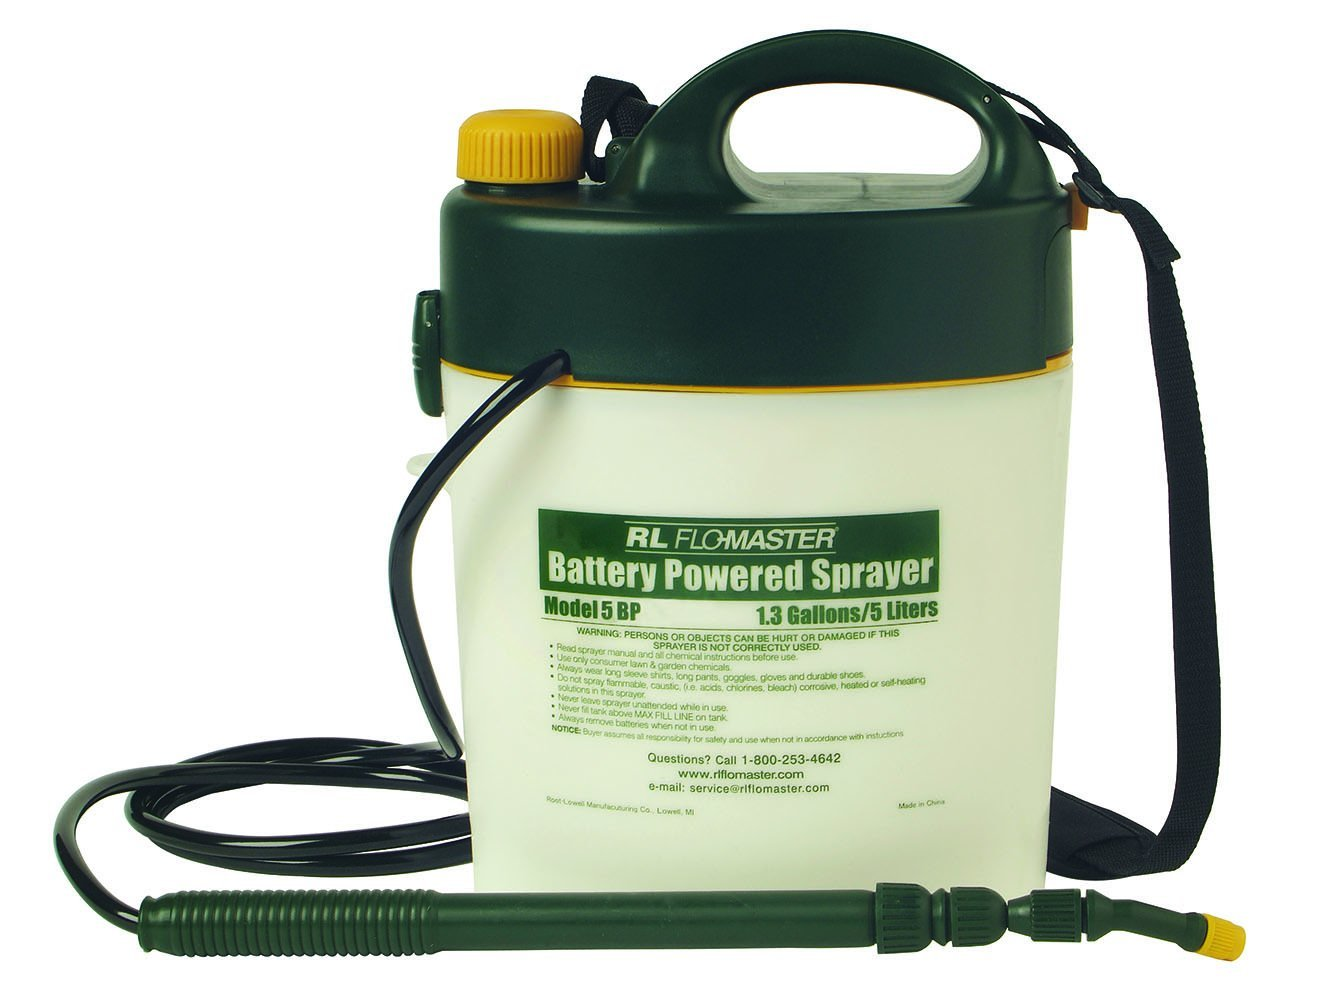 RLF5BP - Portable Battery-Powered Sprayer w/Telescoping Wand